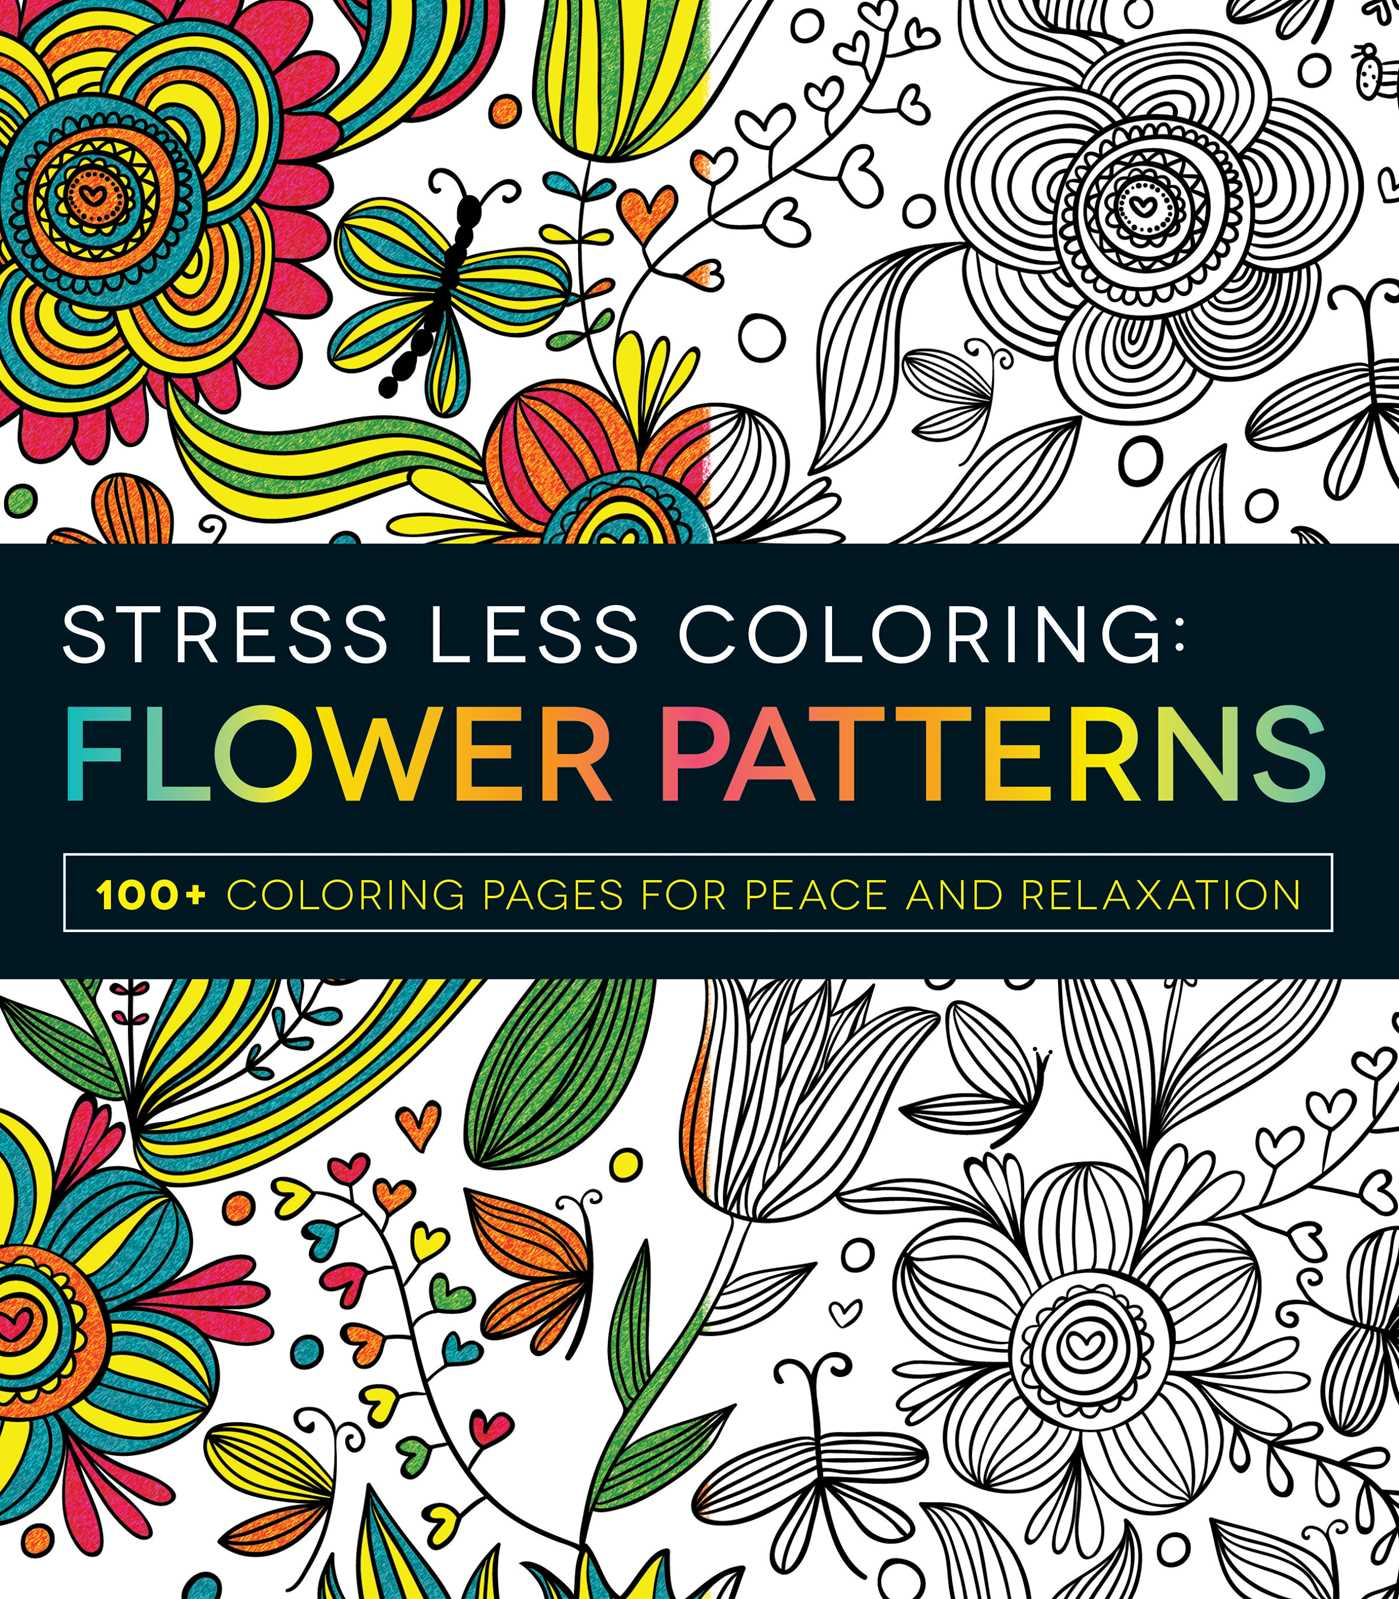 Book Cover Image Jpg Stress Less Coloring